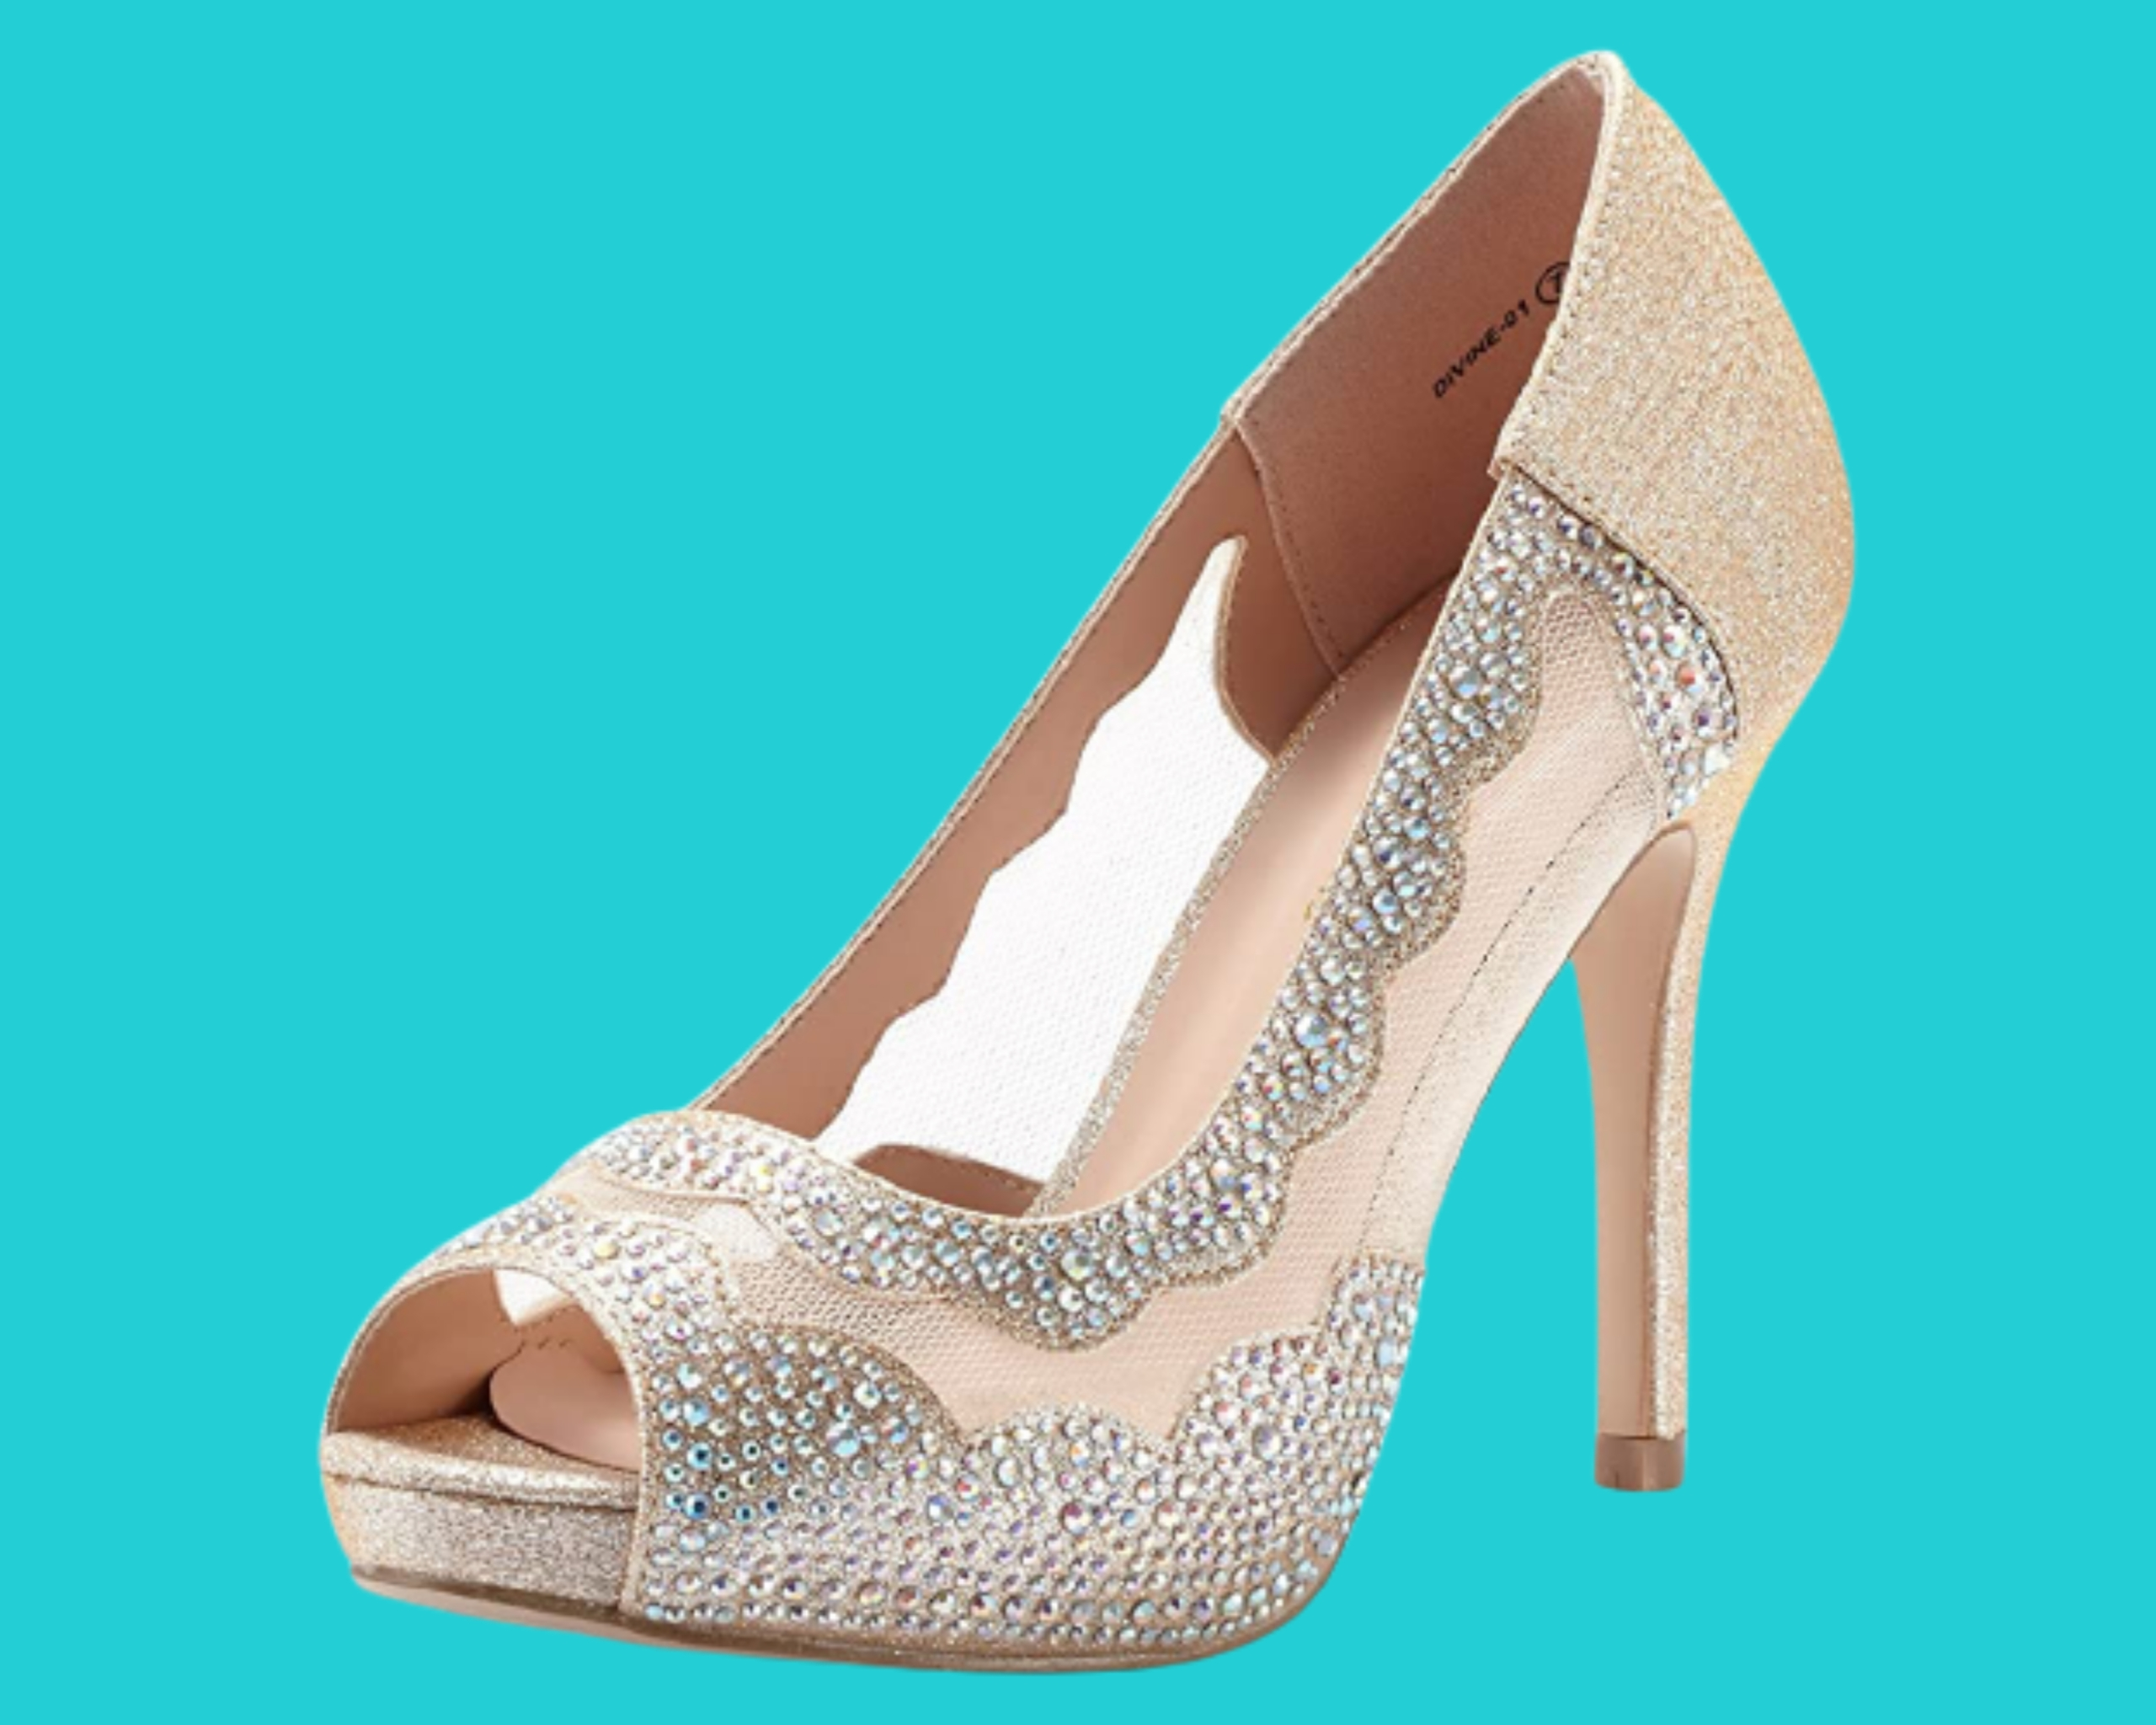 Comfortable party shoes for women